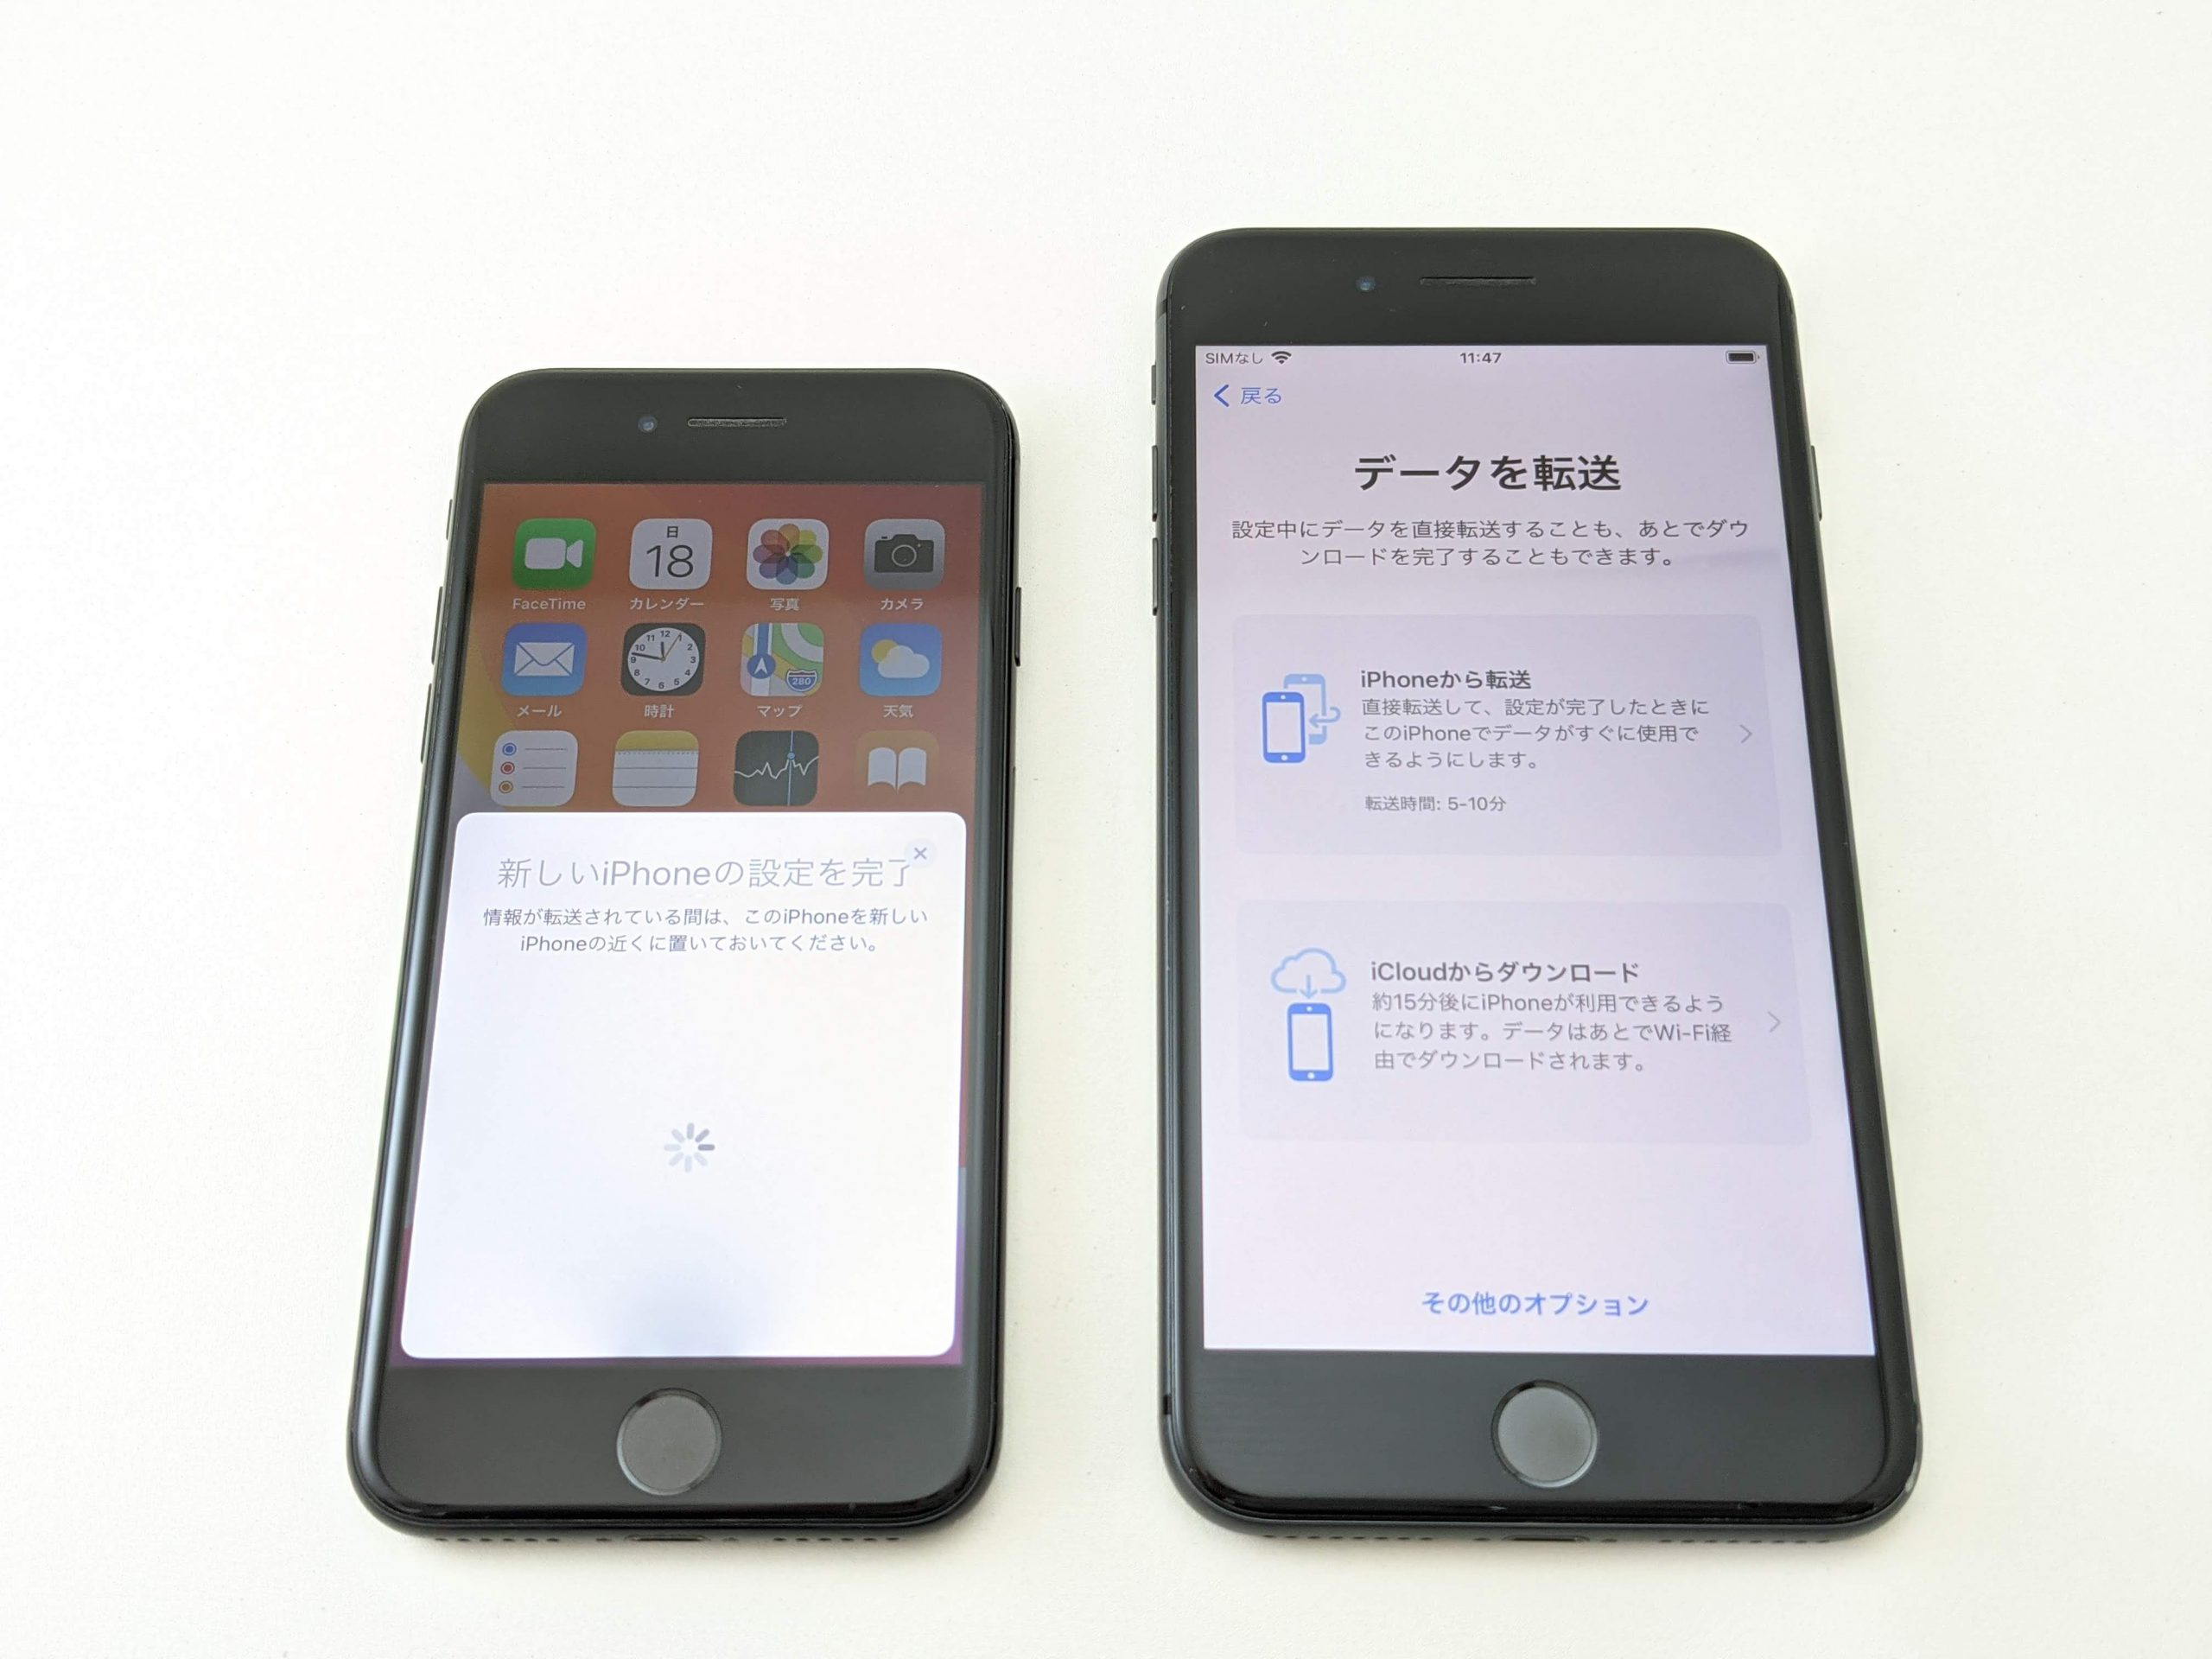 Iphone データ 移行 簡単